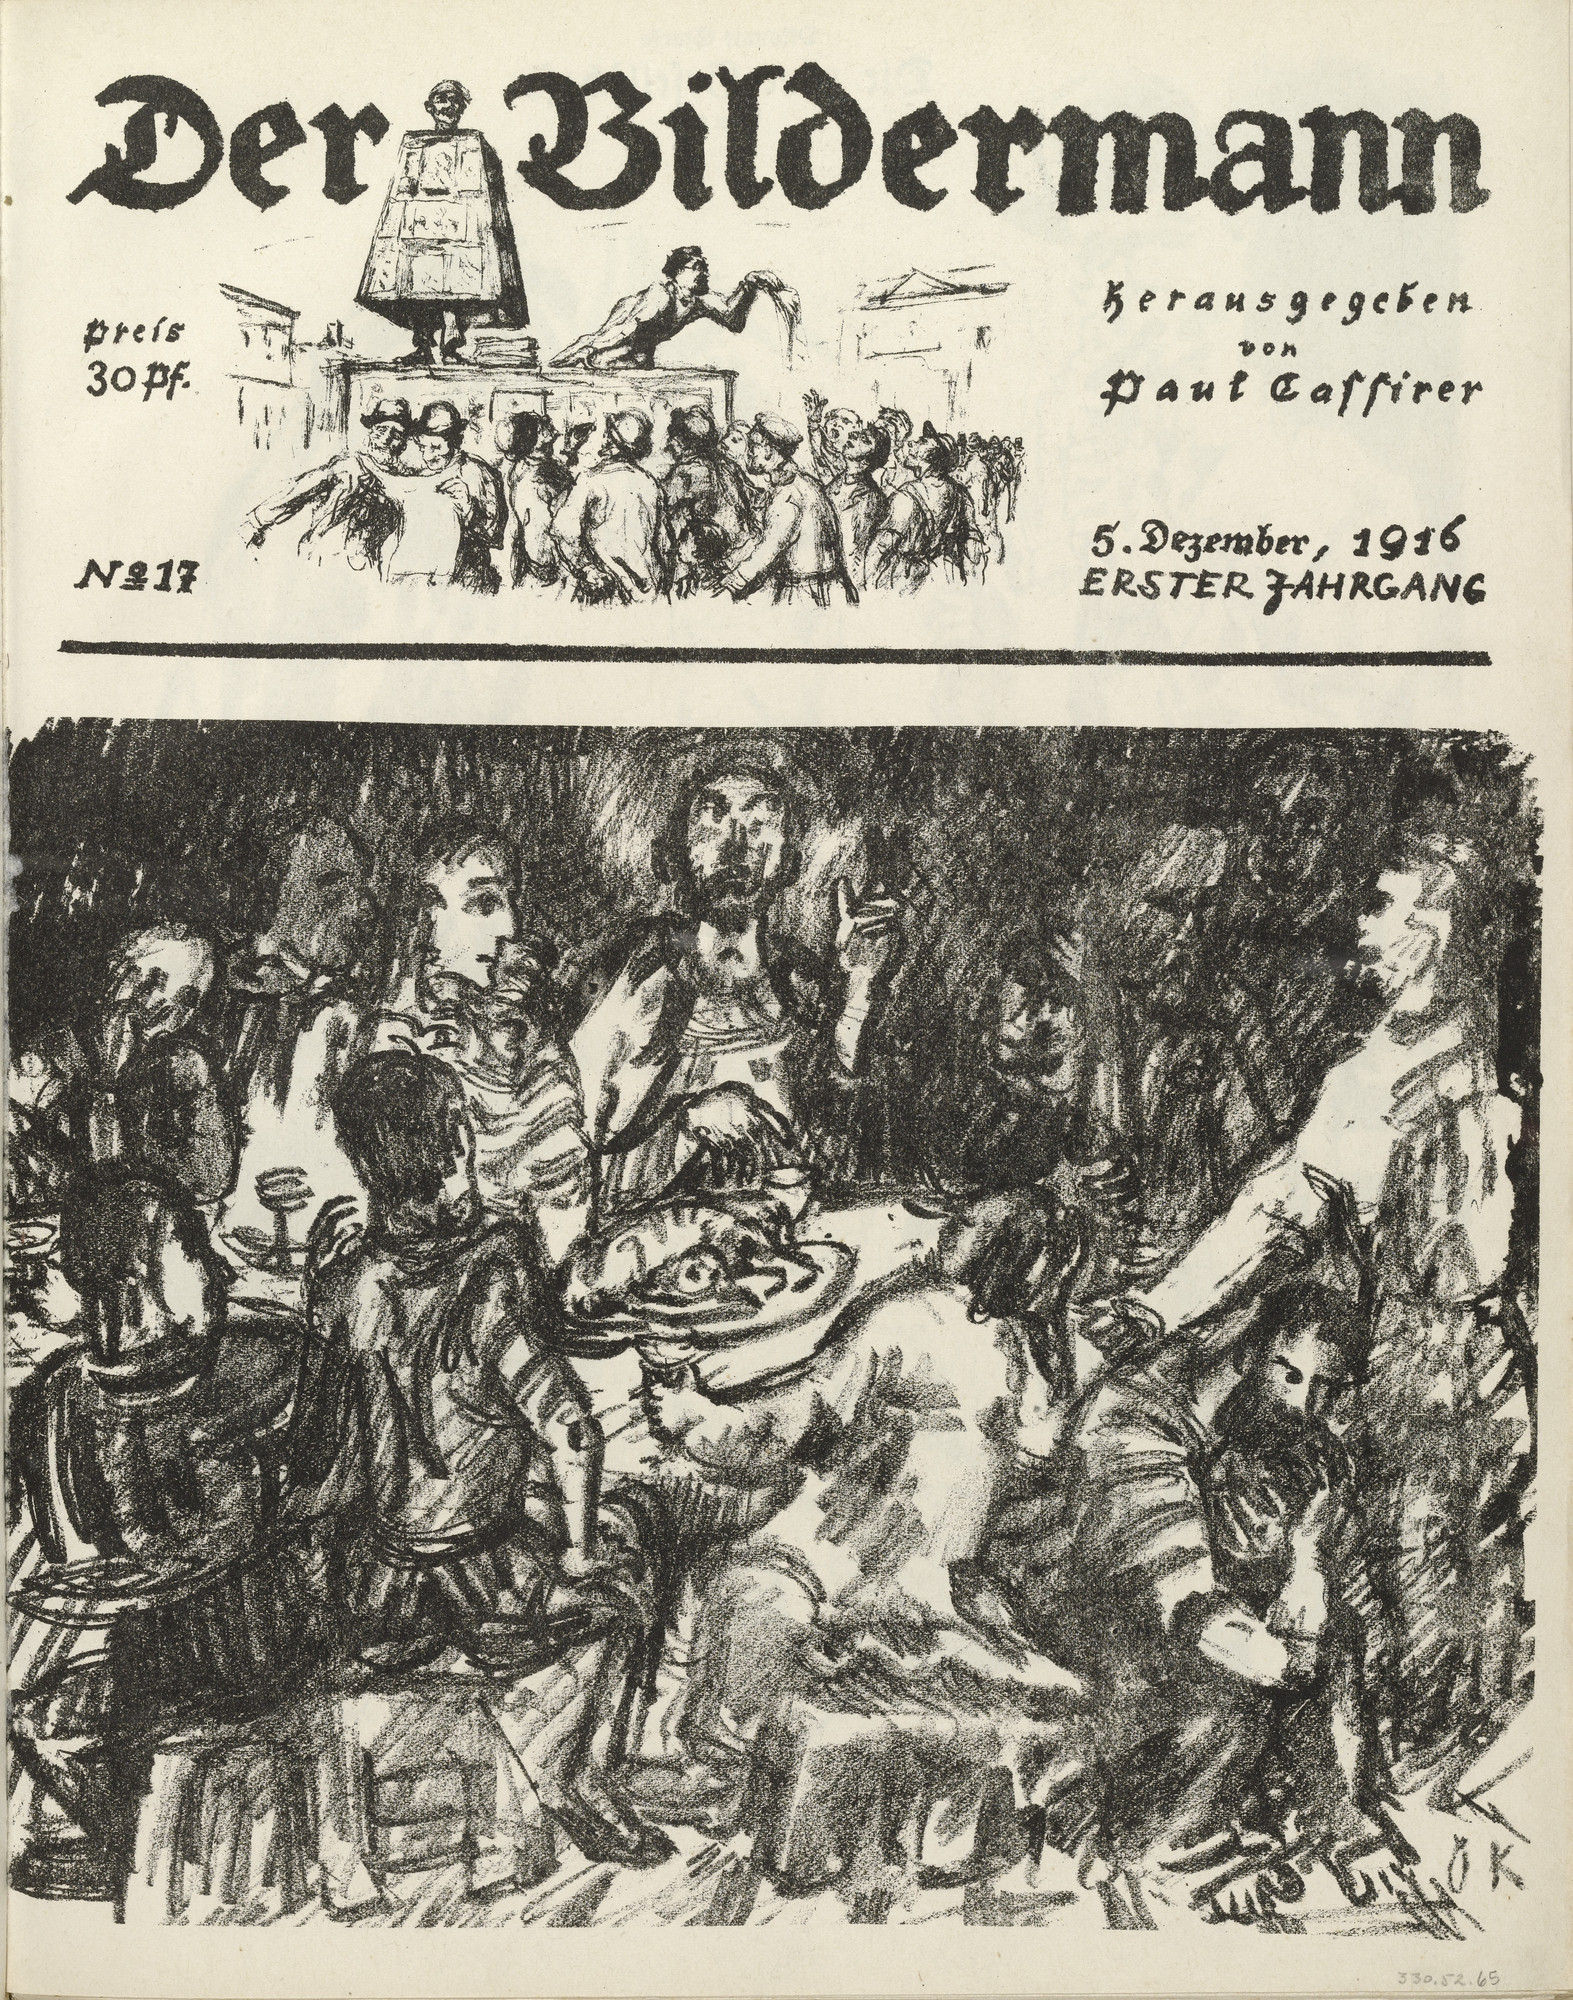 Oskar Kokoschka. The Last Supper (Das Abendmahl) (front cover, folio 34) from the periodical Der Bildermann, vol. 1, no. 17 (Dec 1916). 1916